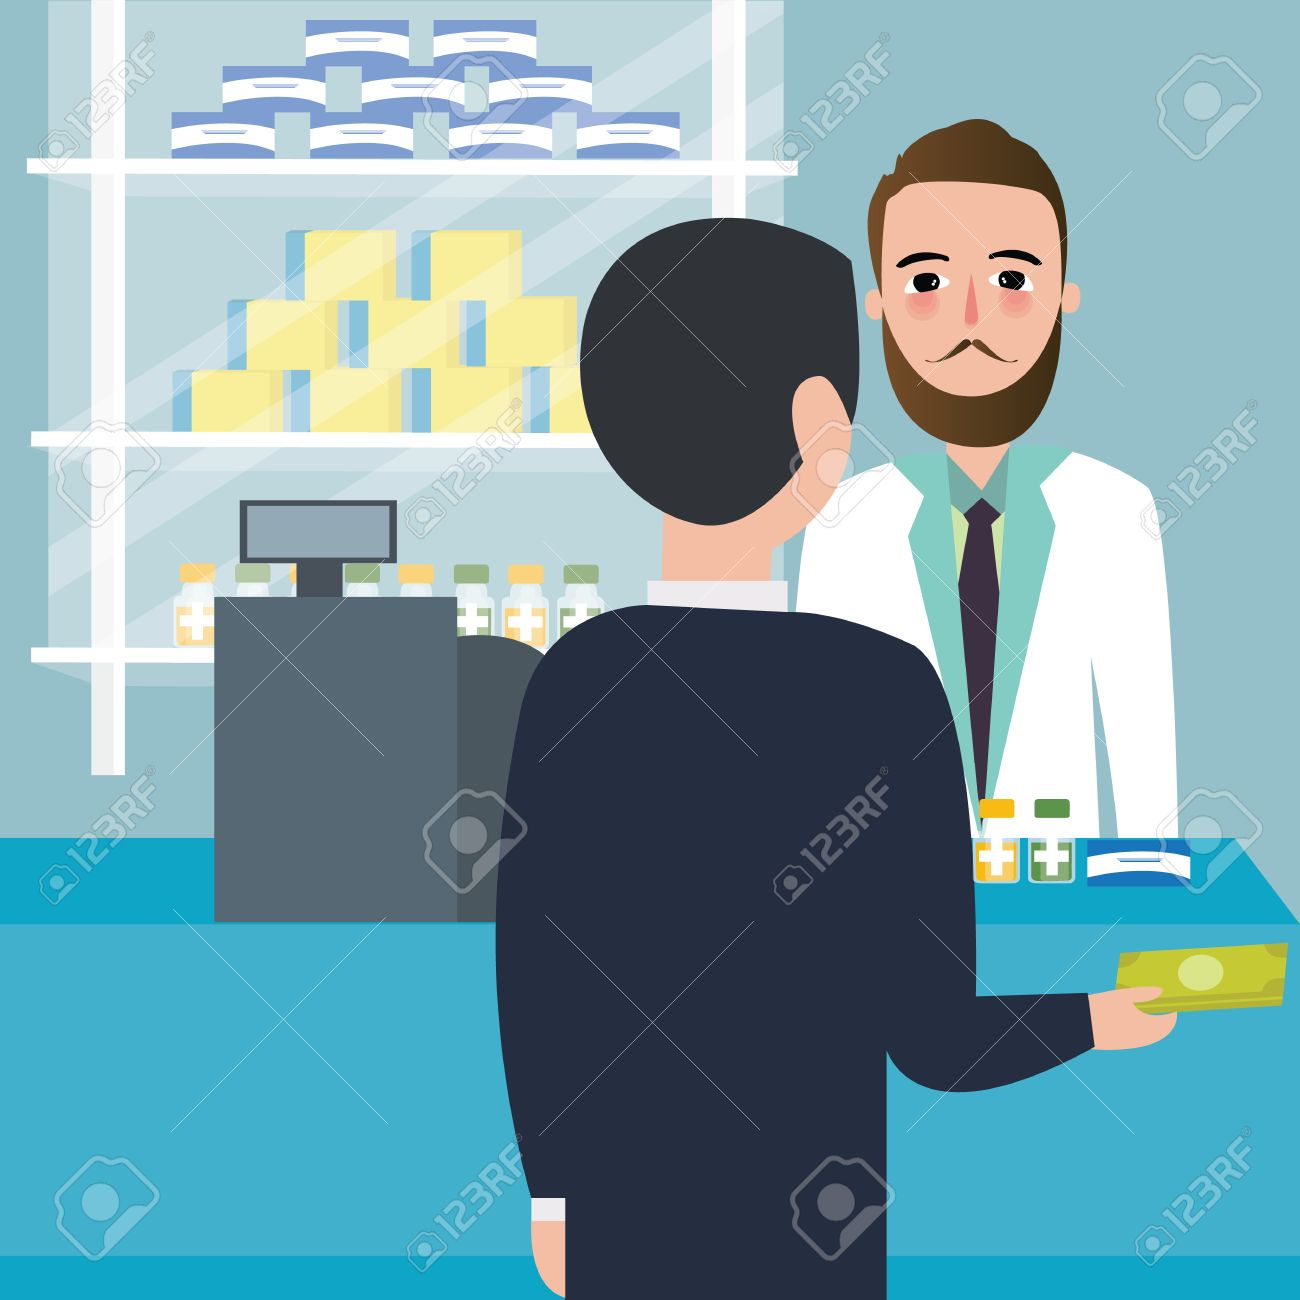 People Consumer Buying Drug In Drug Store Pharmacy Store At Counter